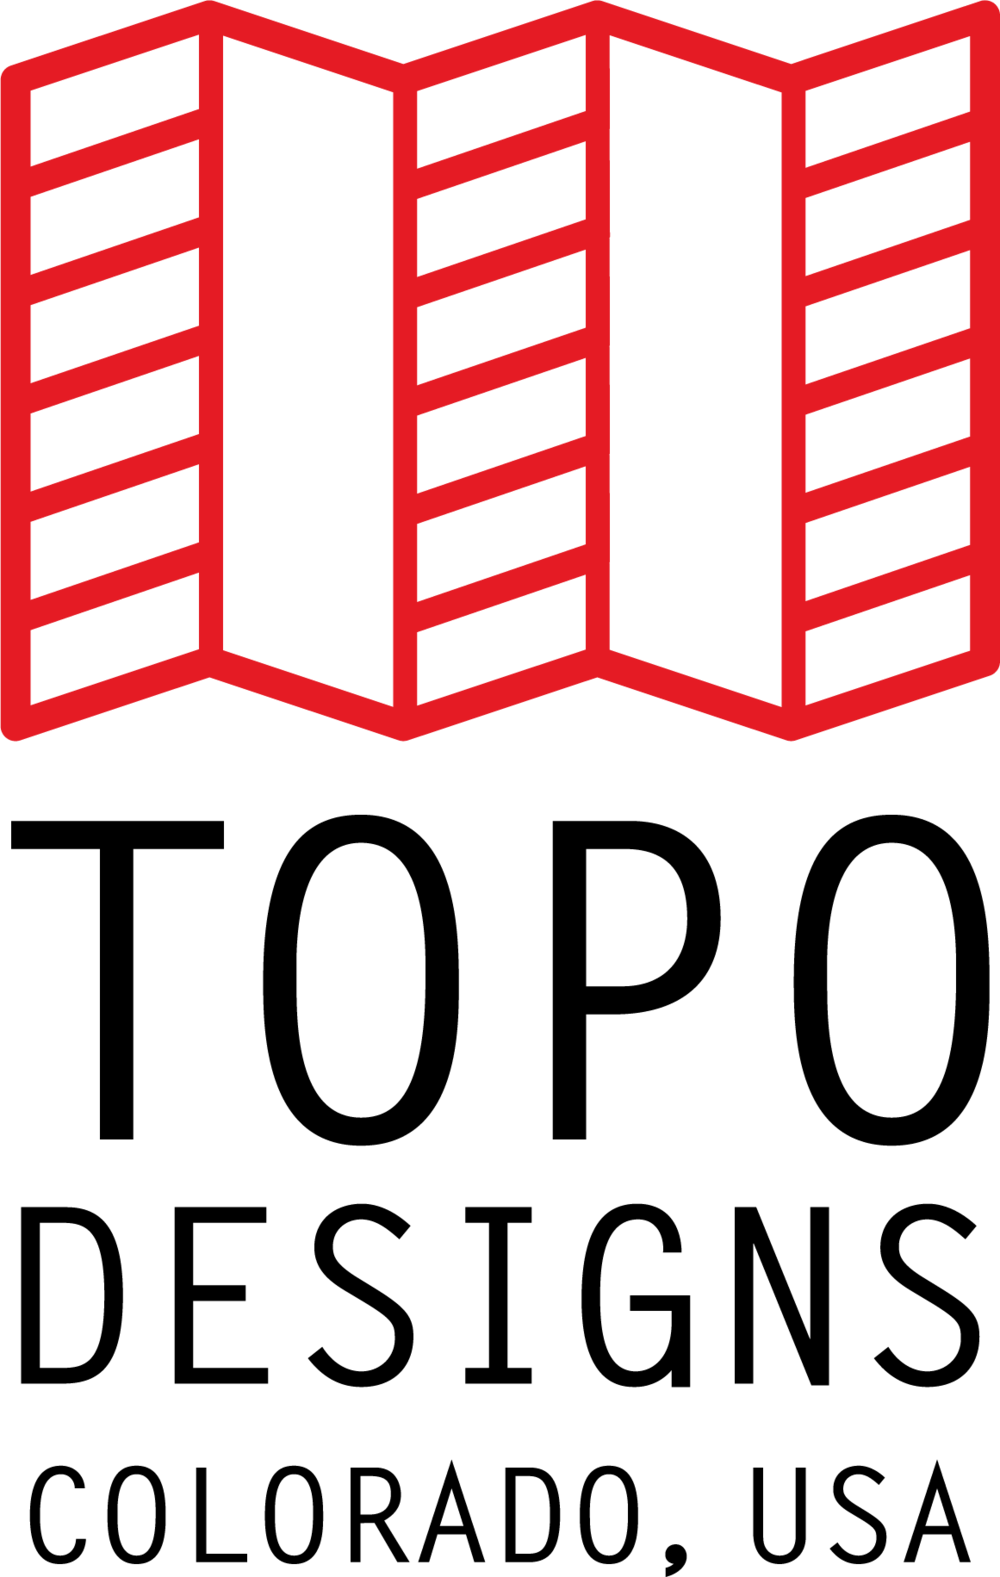 topo_designs_logo_vertical-transparent-red-black.png